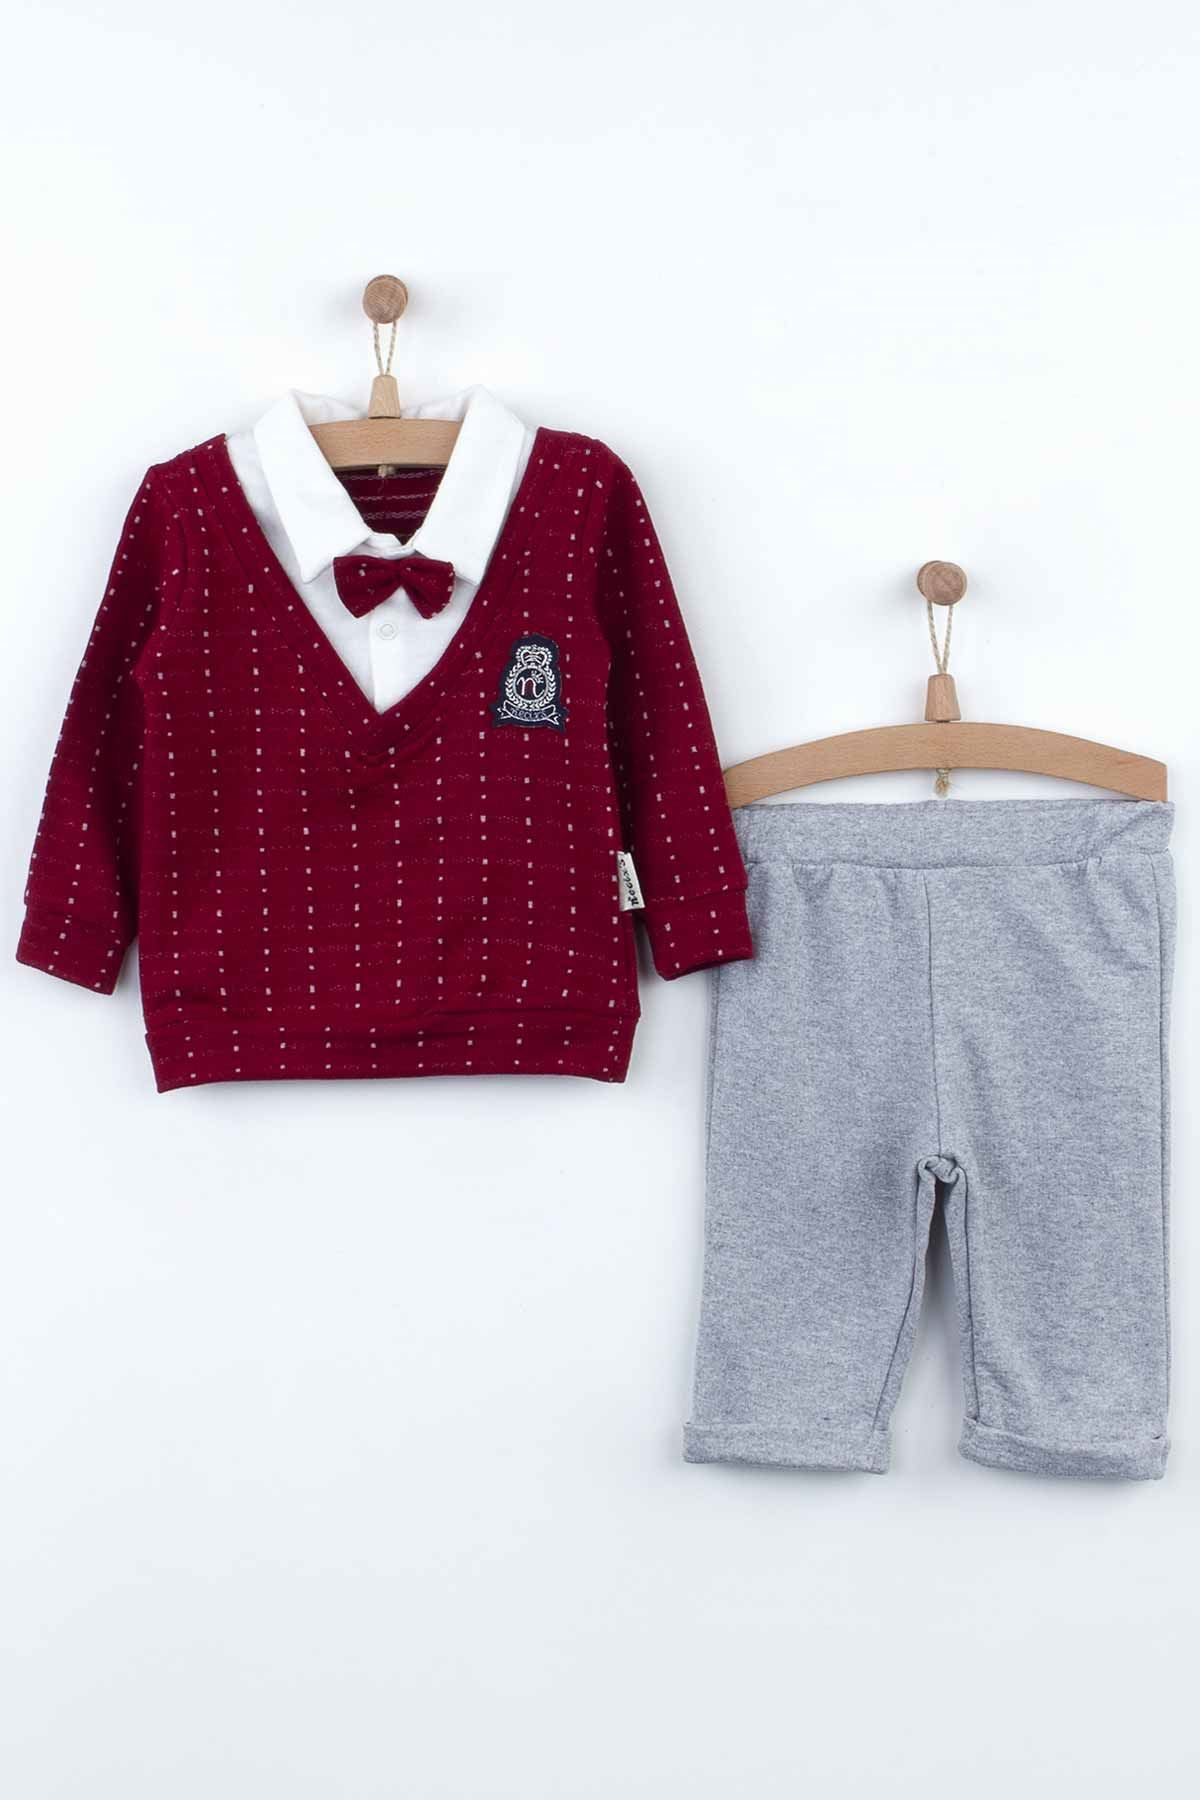 Maroon Baby Boys Gentleman Sweater Bottom Set 2 Piece Set Season Fashion Babies Bow Tie Cotton Casual Wear Outfit Dolls model